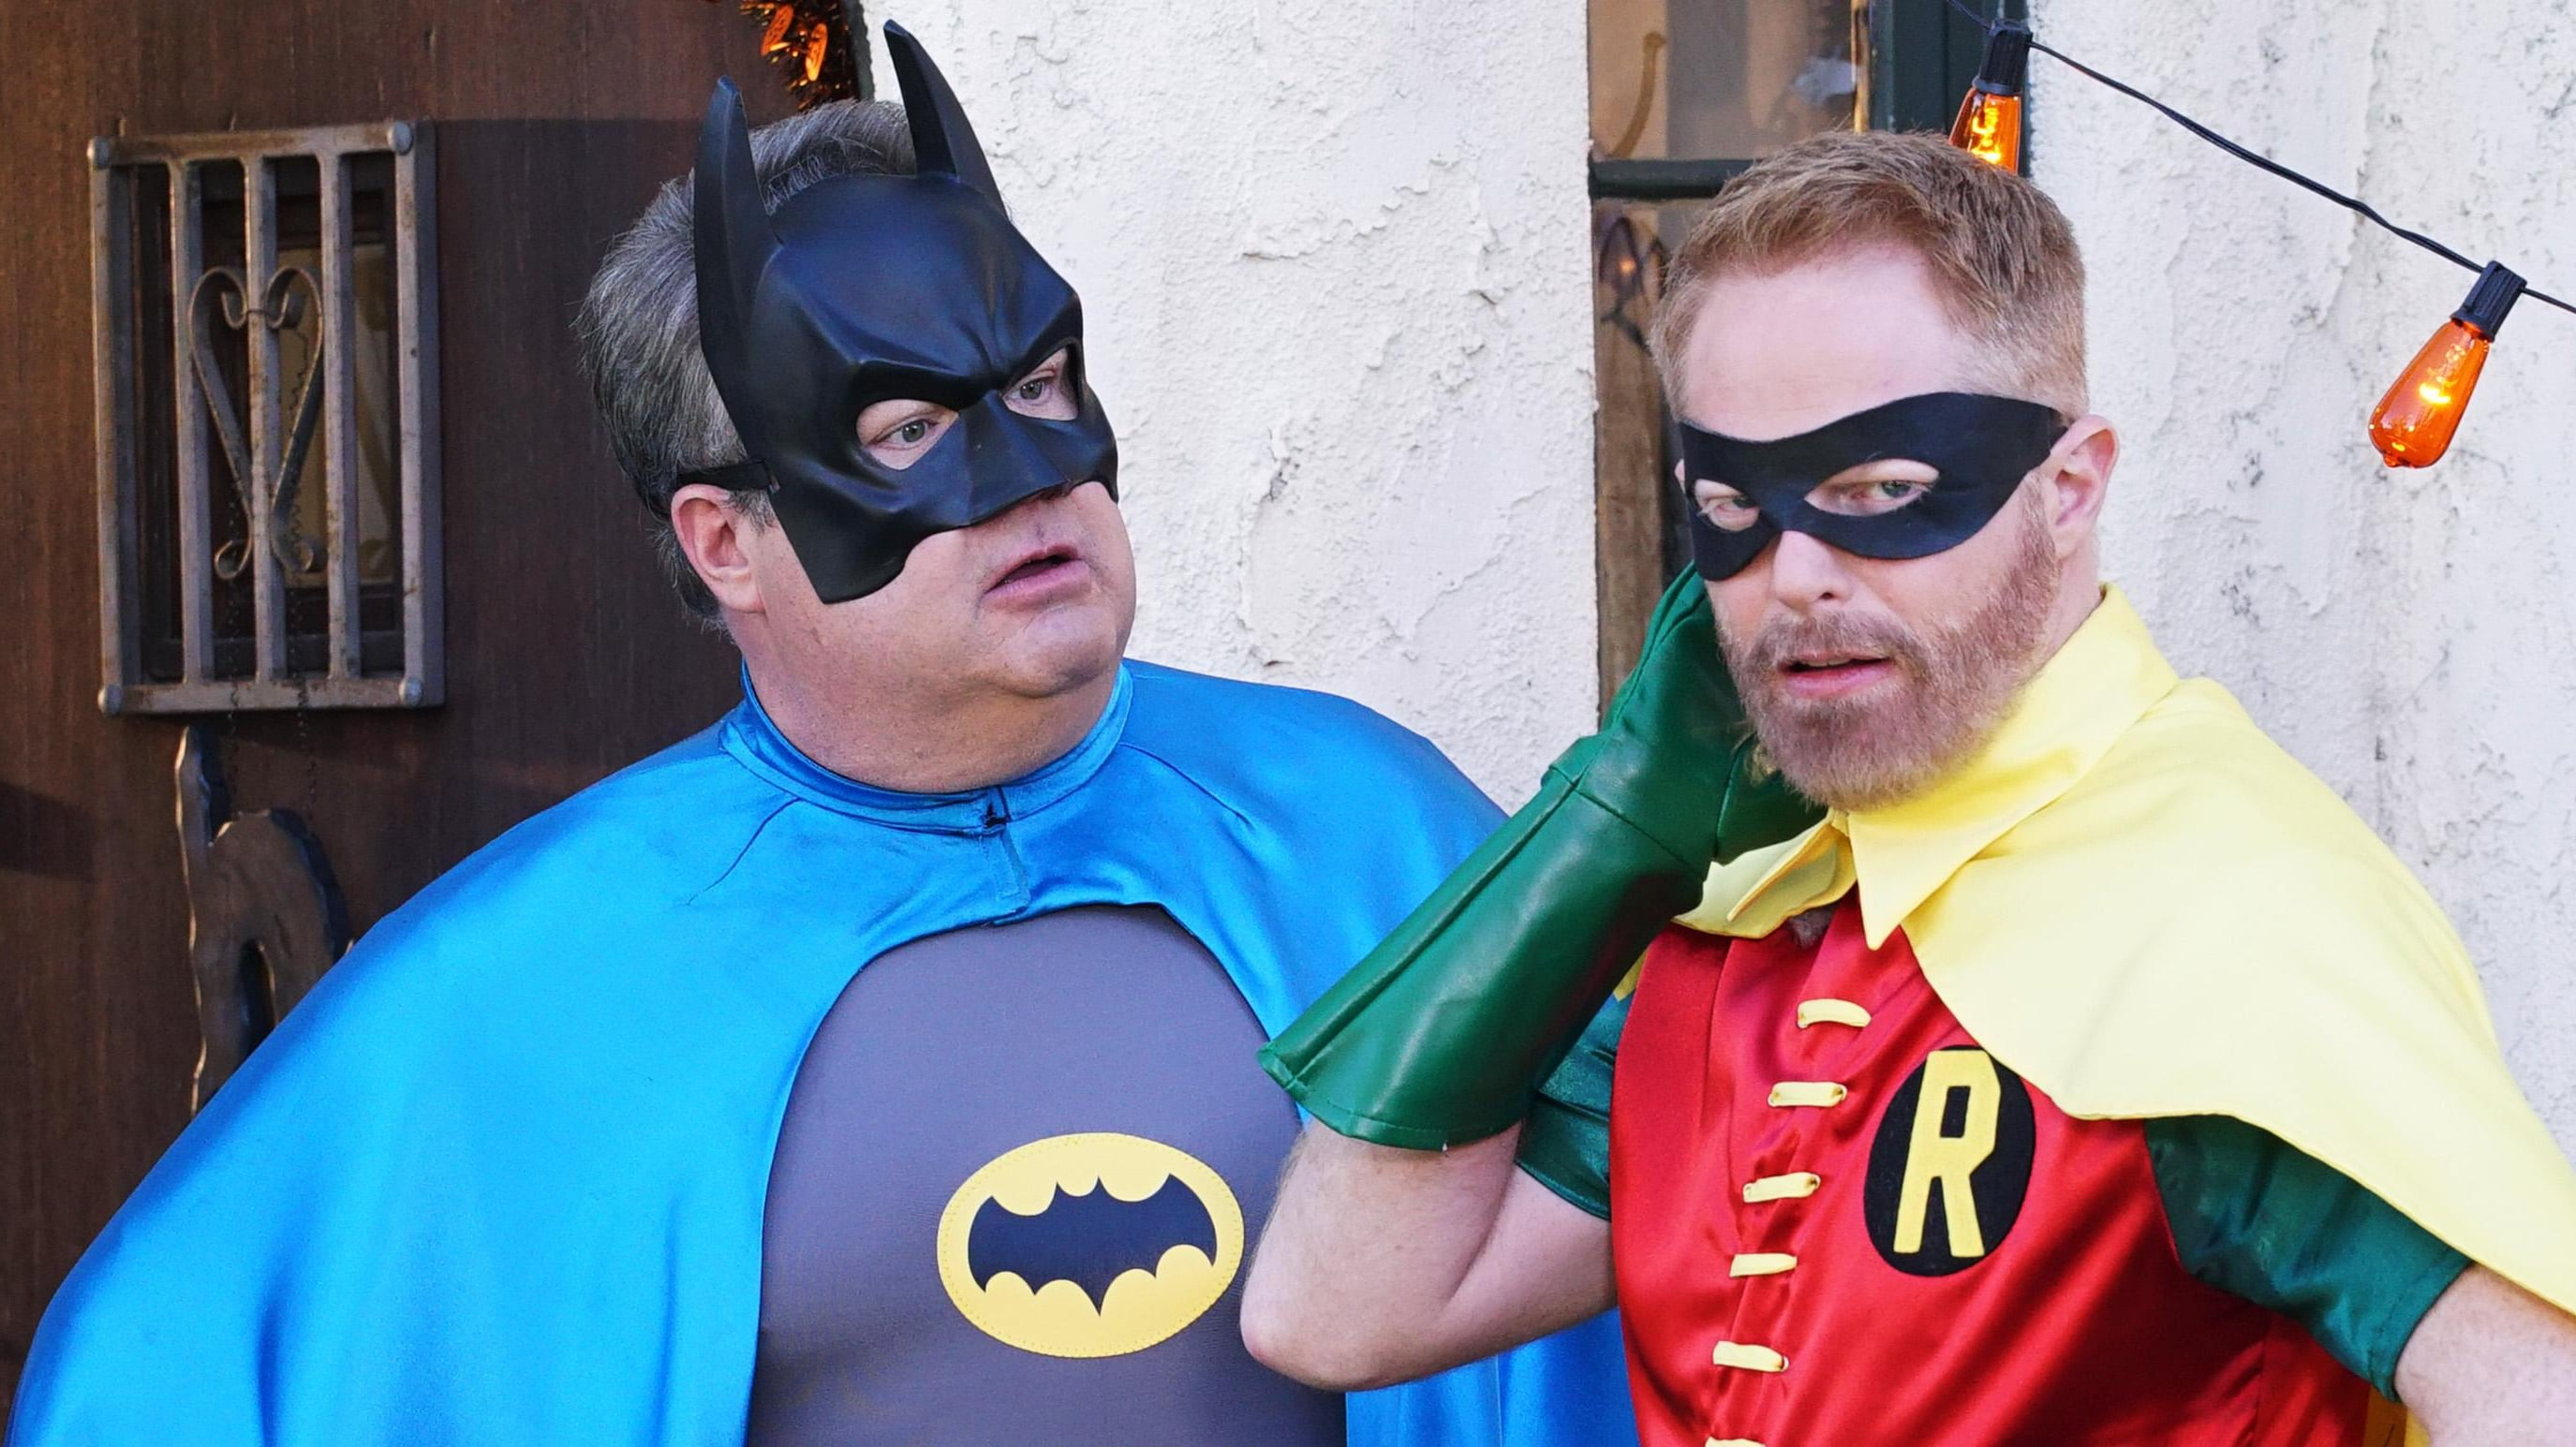 Modern Family - Season 8 Episode 5 : Halloween 4: The Revenge of Rod Skyhook